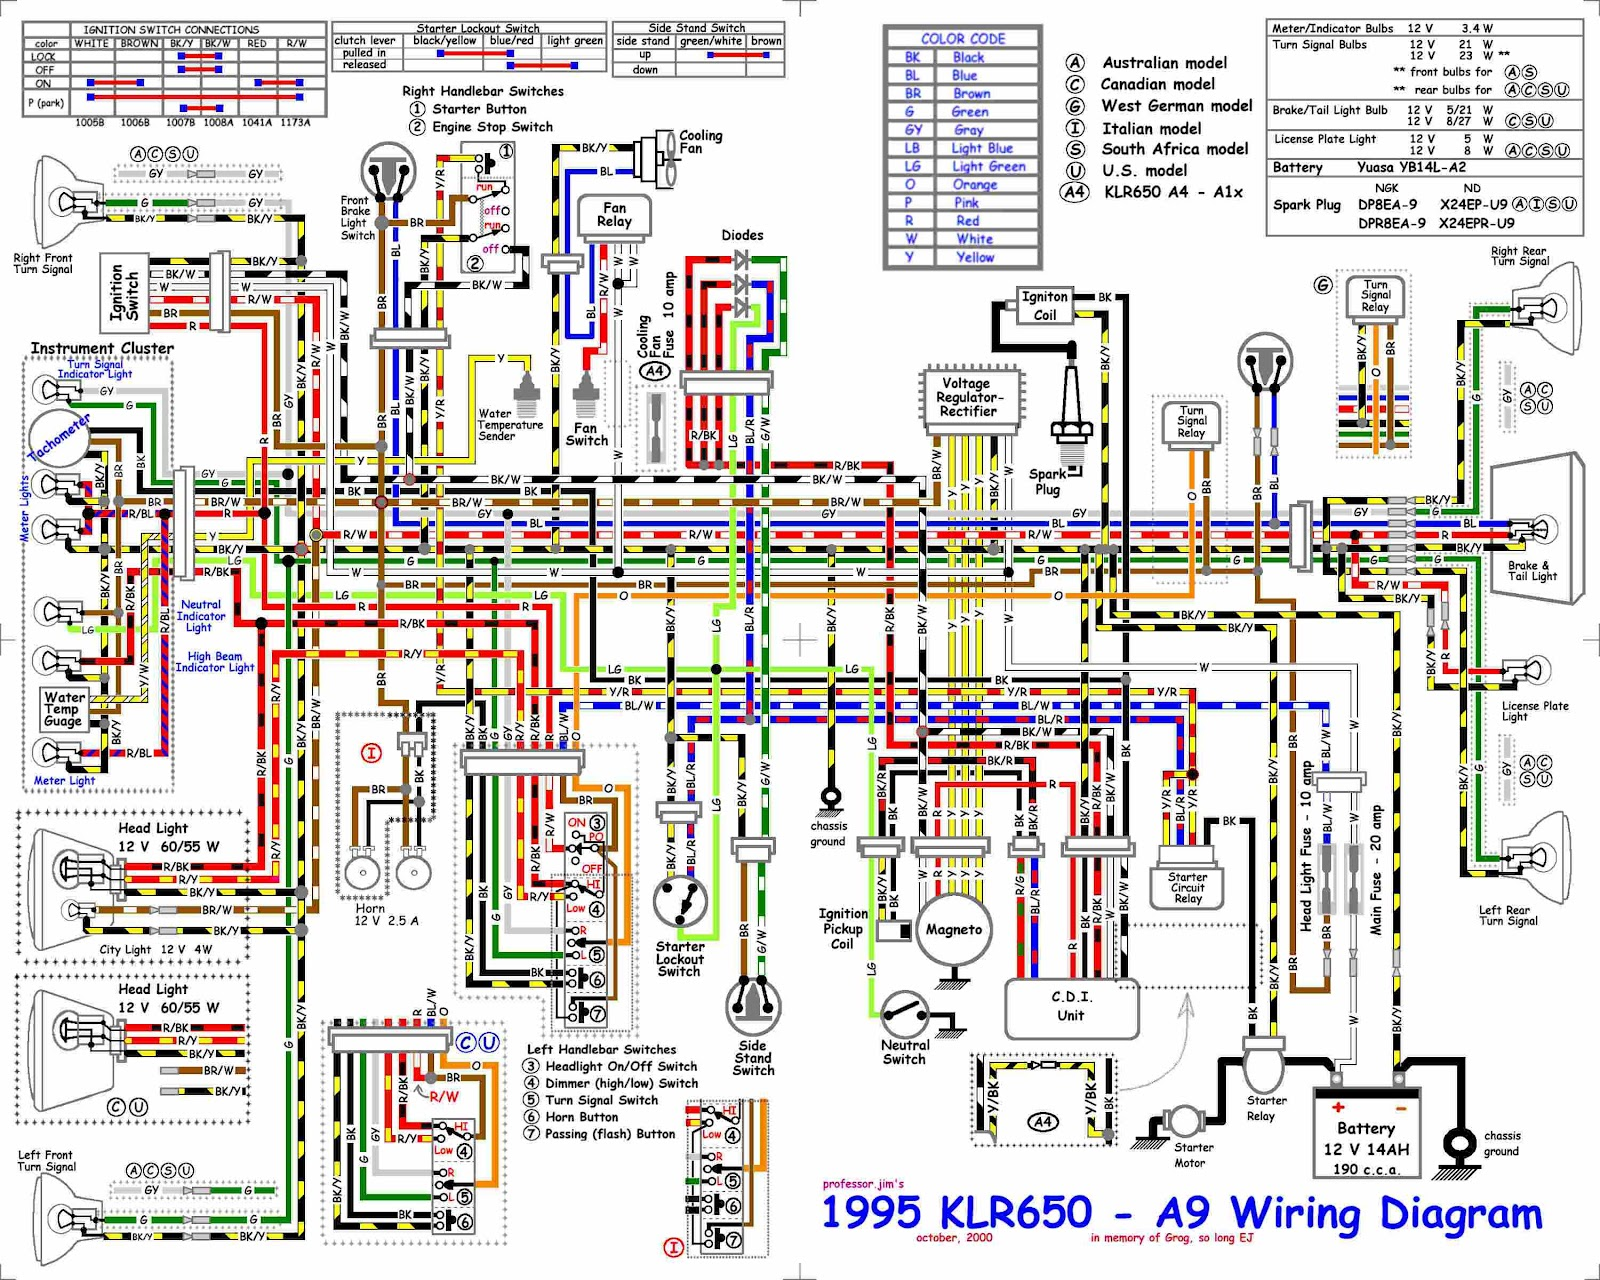 Kawasaki KLR650 A9 1995 Motorcycle Electrical Wiring Diagram All